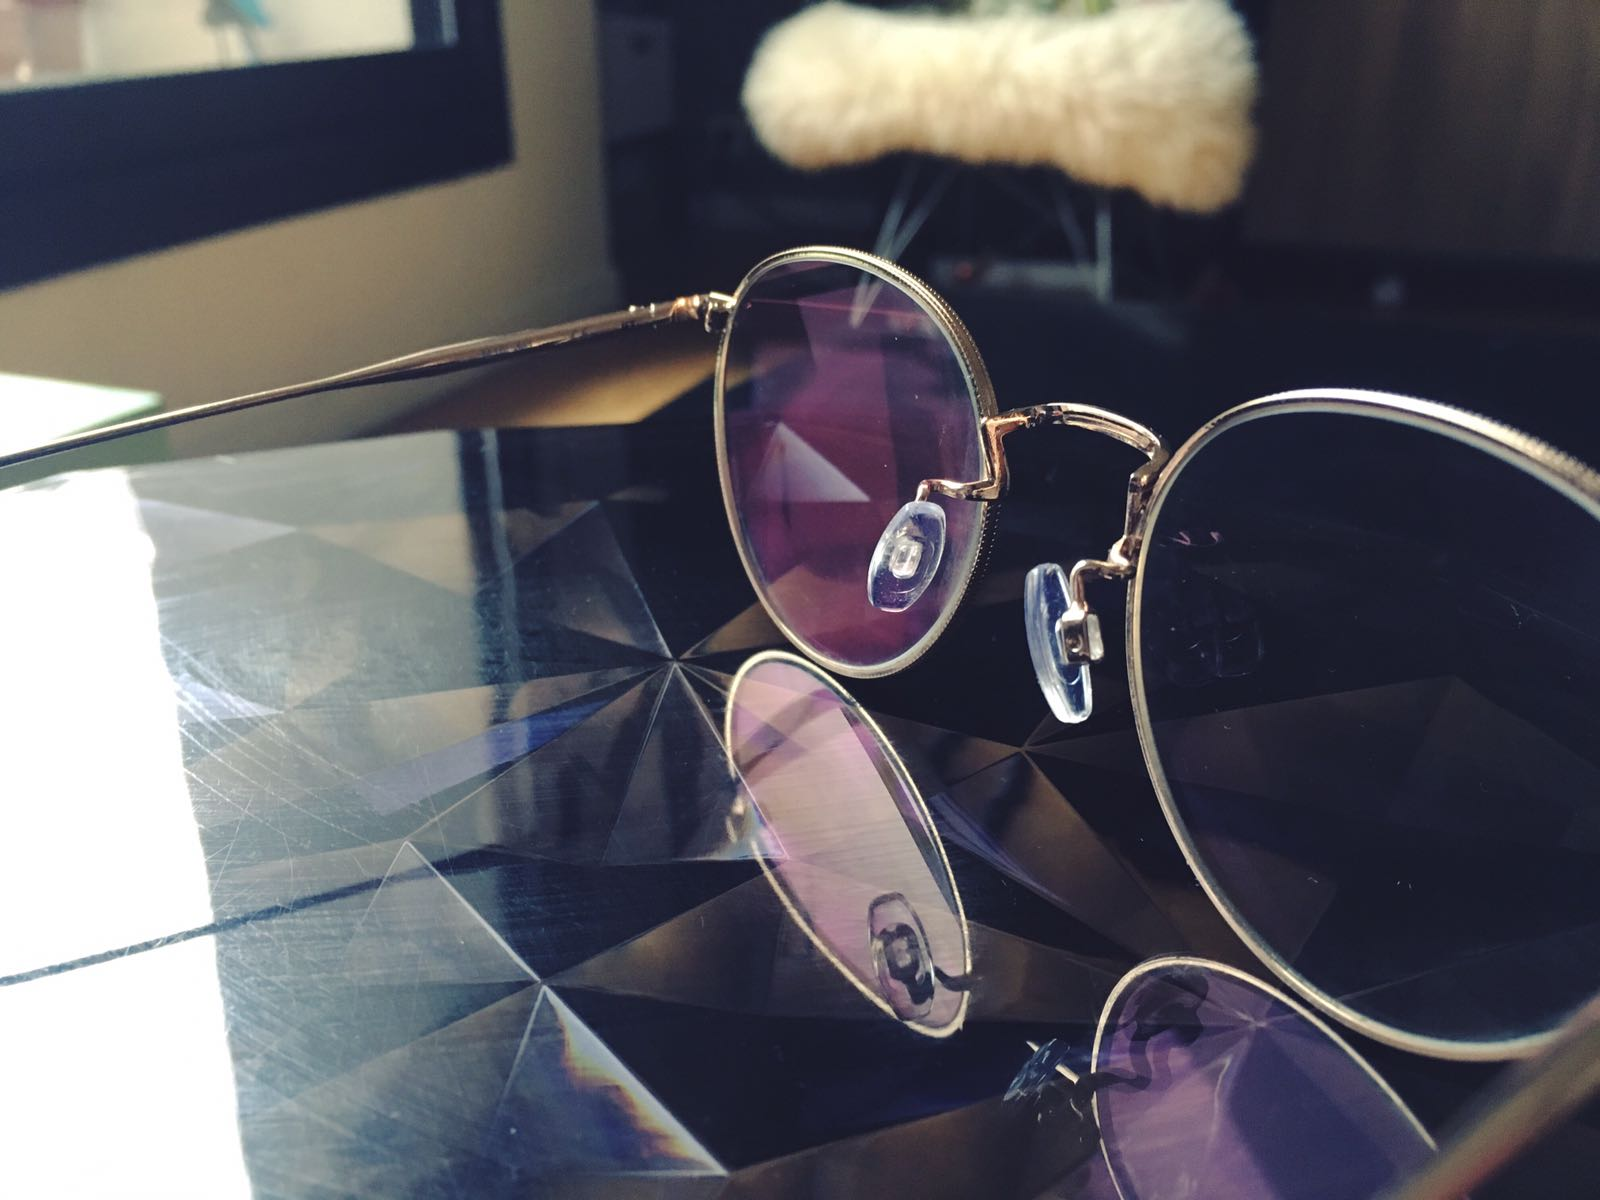 lunettes-monture-fine-metal-doree-or-agrent-jimmy-fairly-4